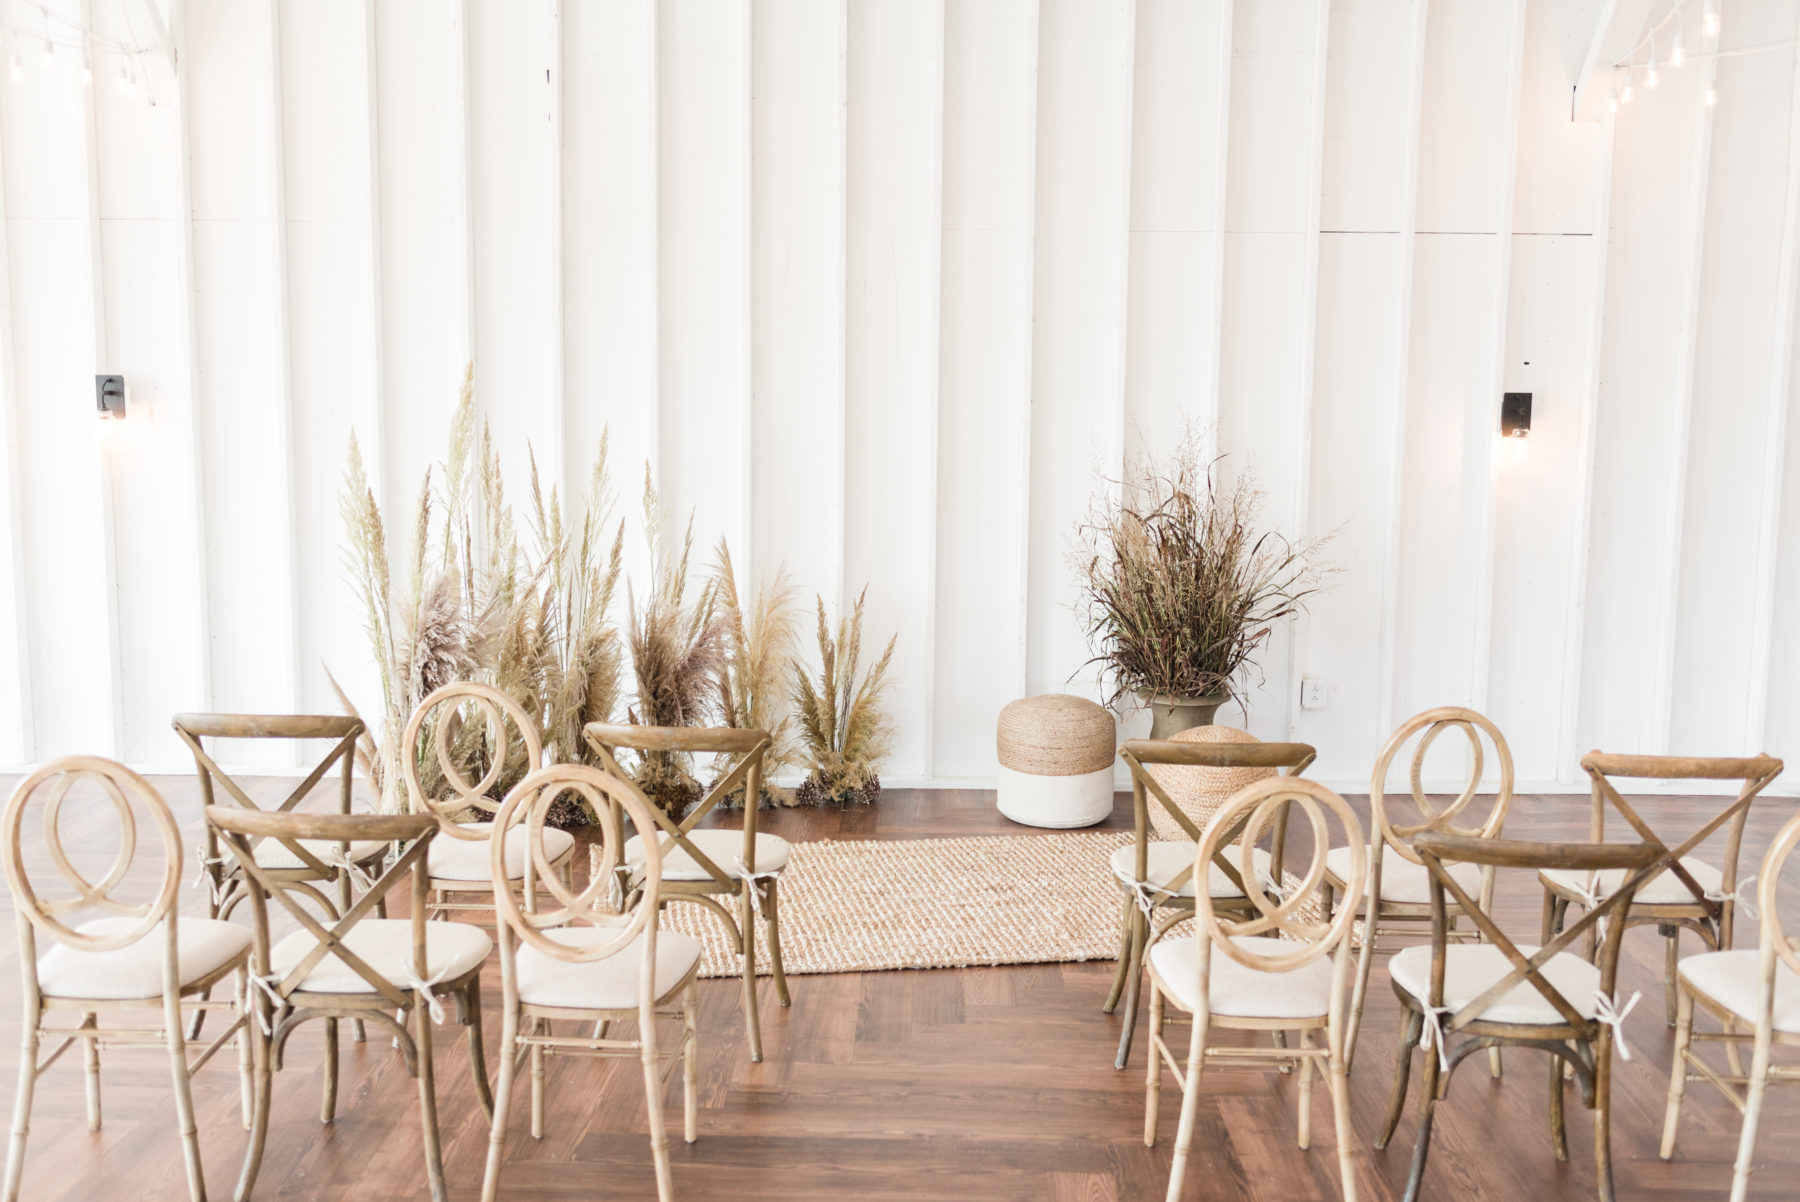 Pampas Grass Wedding Ceremony Decor: Organic Eco-Friendly Wedding Styled Shoot featured on Nashville Bride Guide